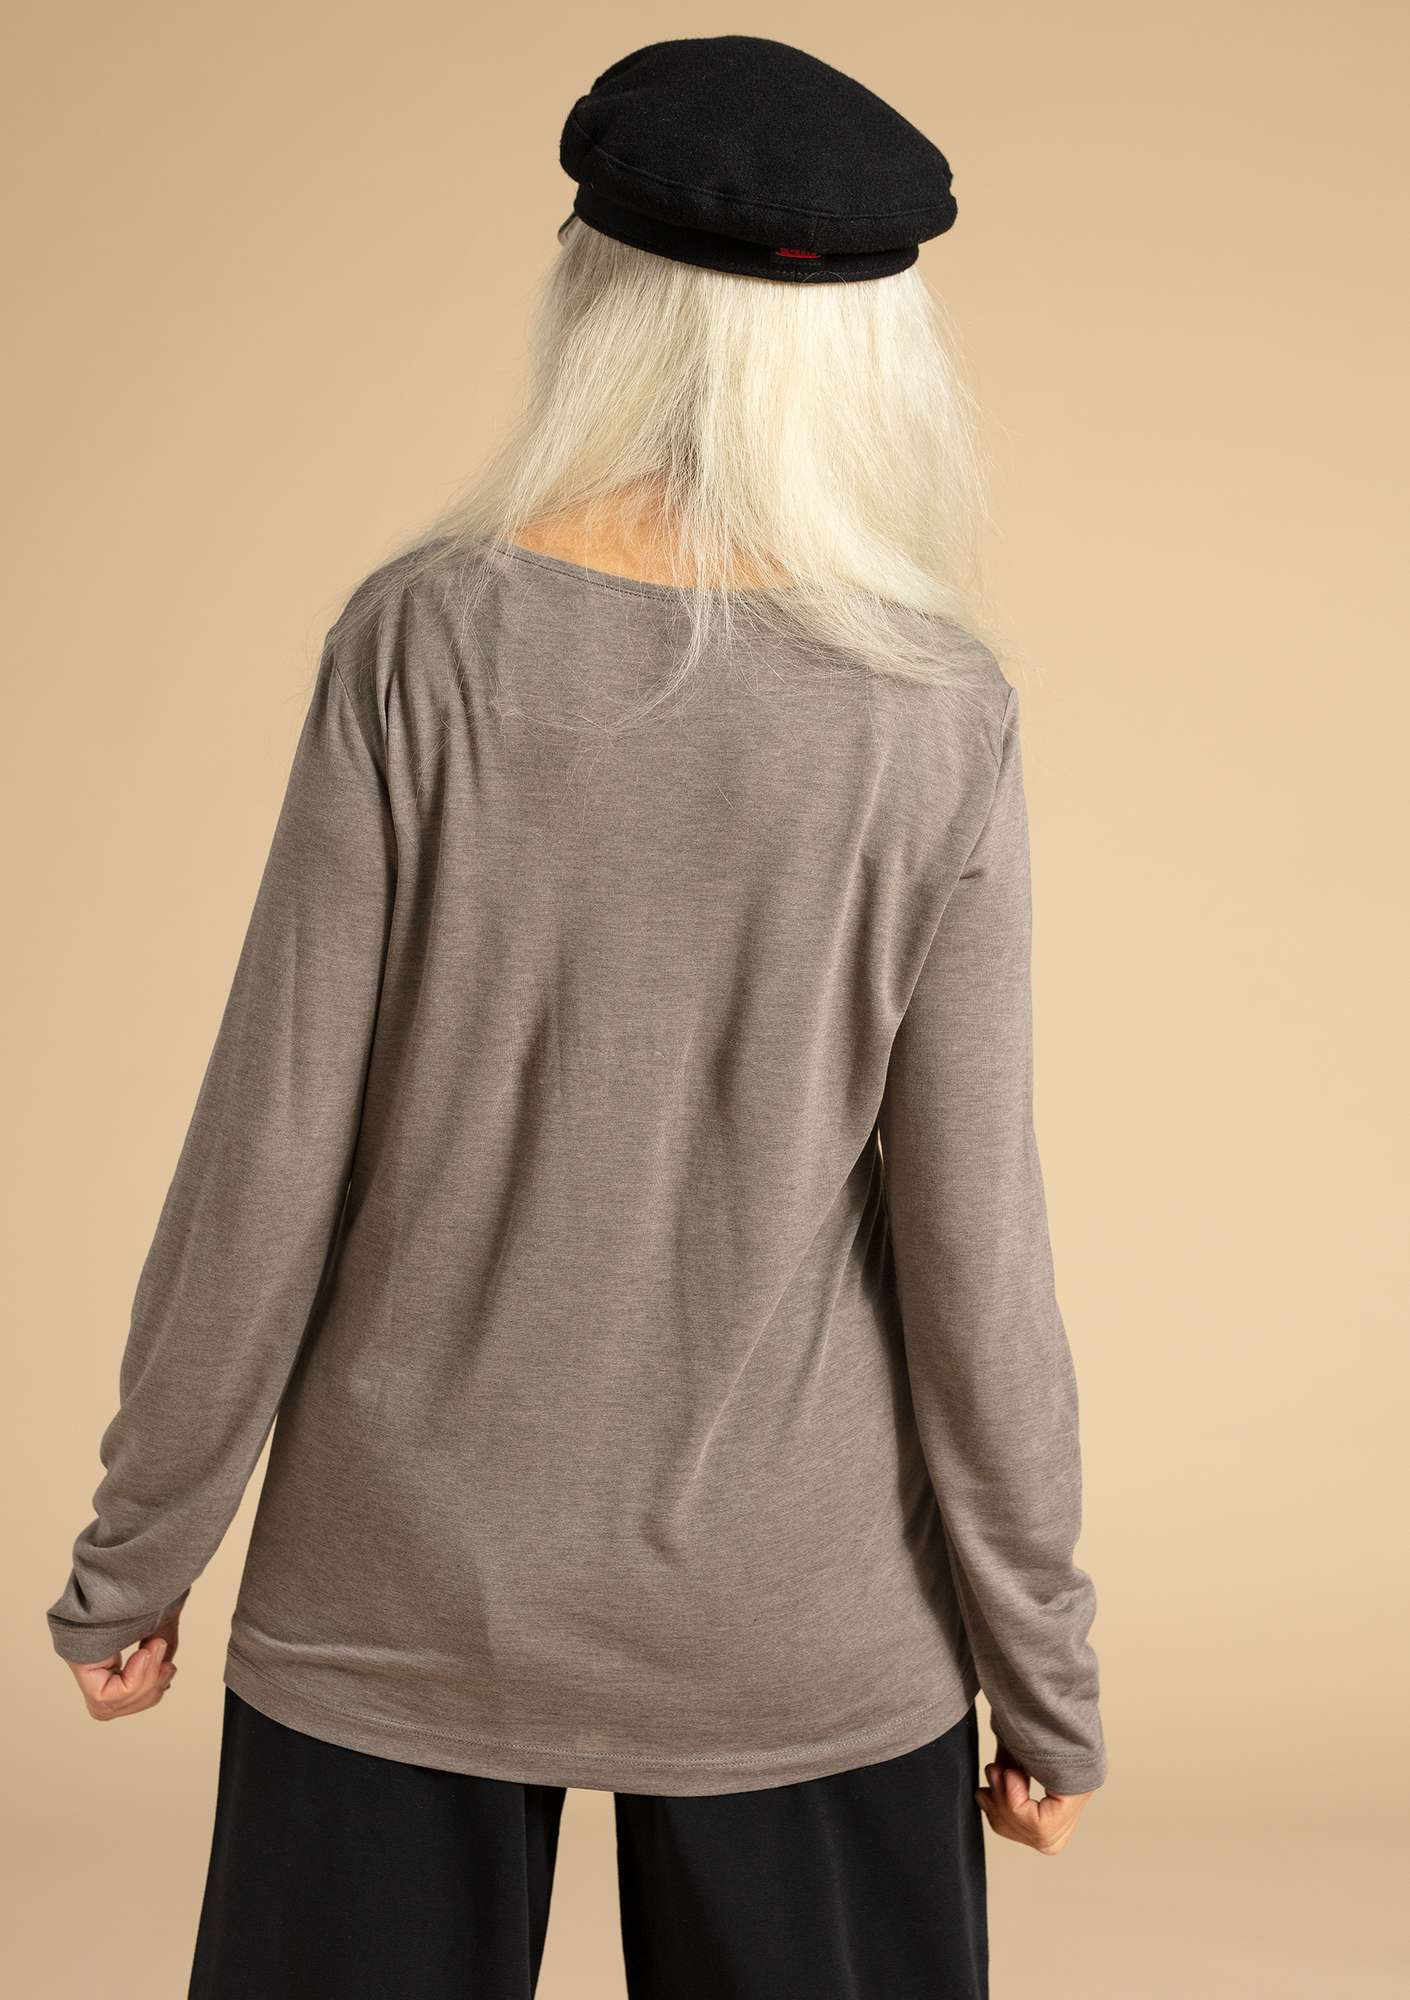 """Twinkle"" top in modal nature gray"